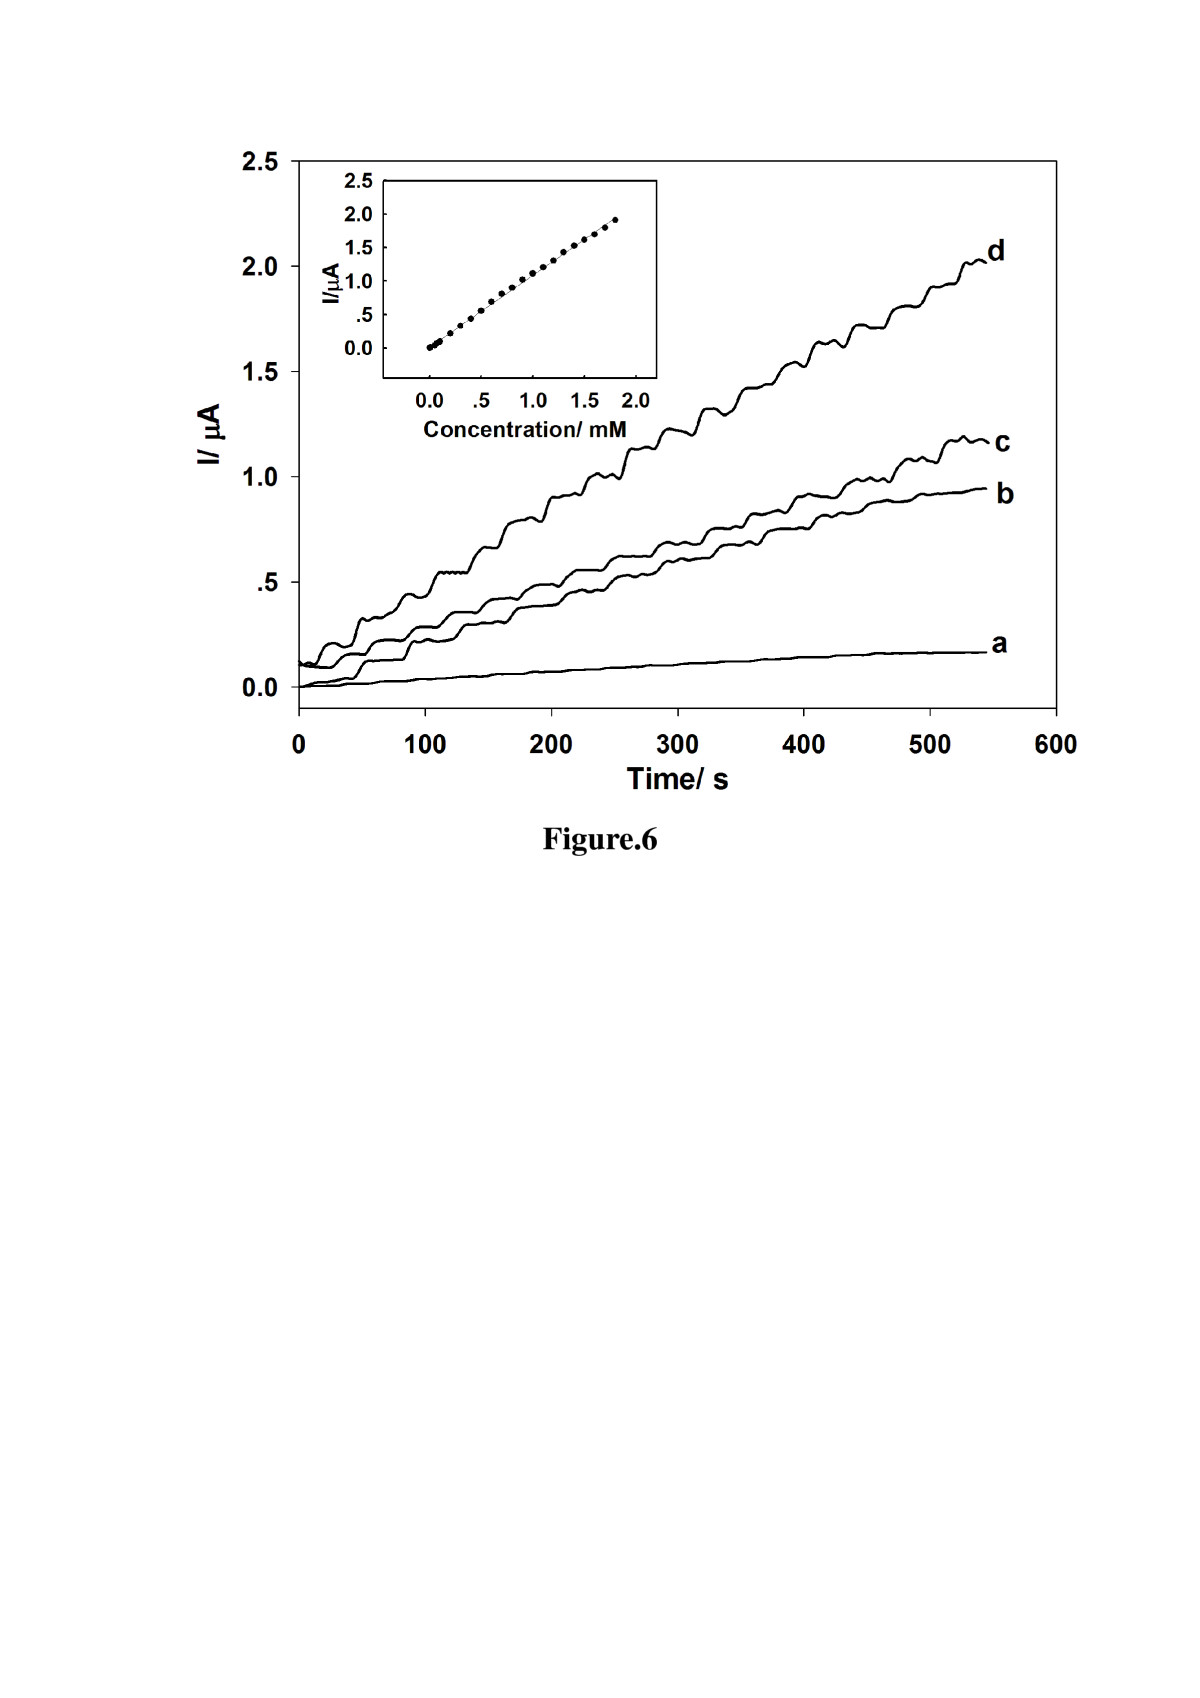 https://static-content.springer.com/image/art%3A10.1186%2F1556-276X-9-99/MediaObjects/11671_2013_Article_1875_Fig6_HTML.jpg